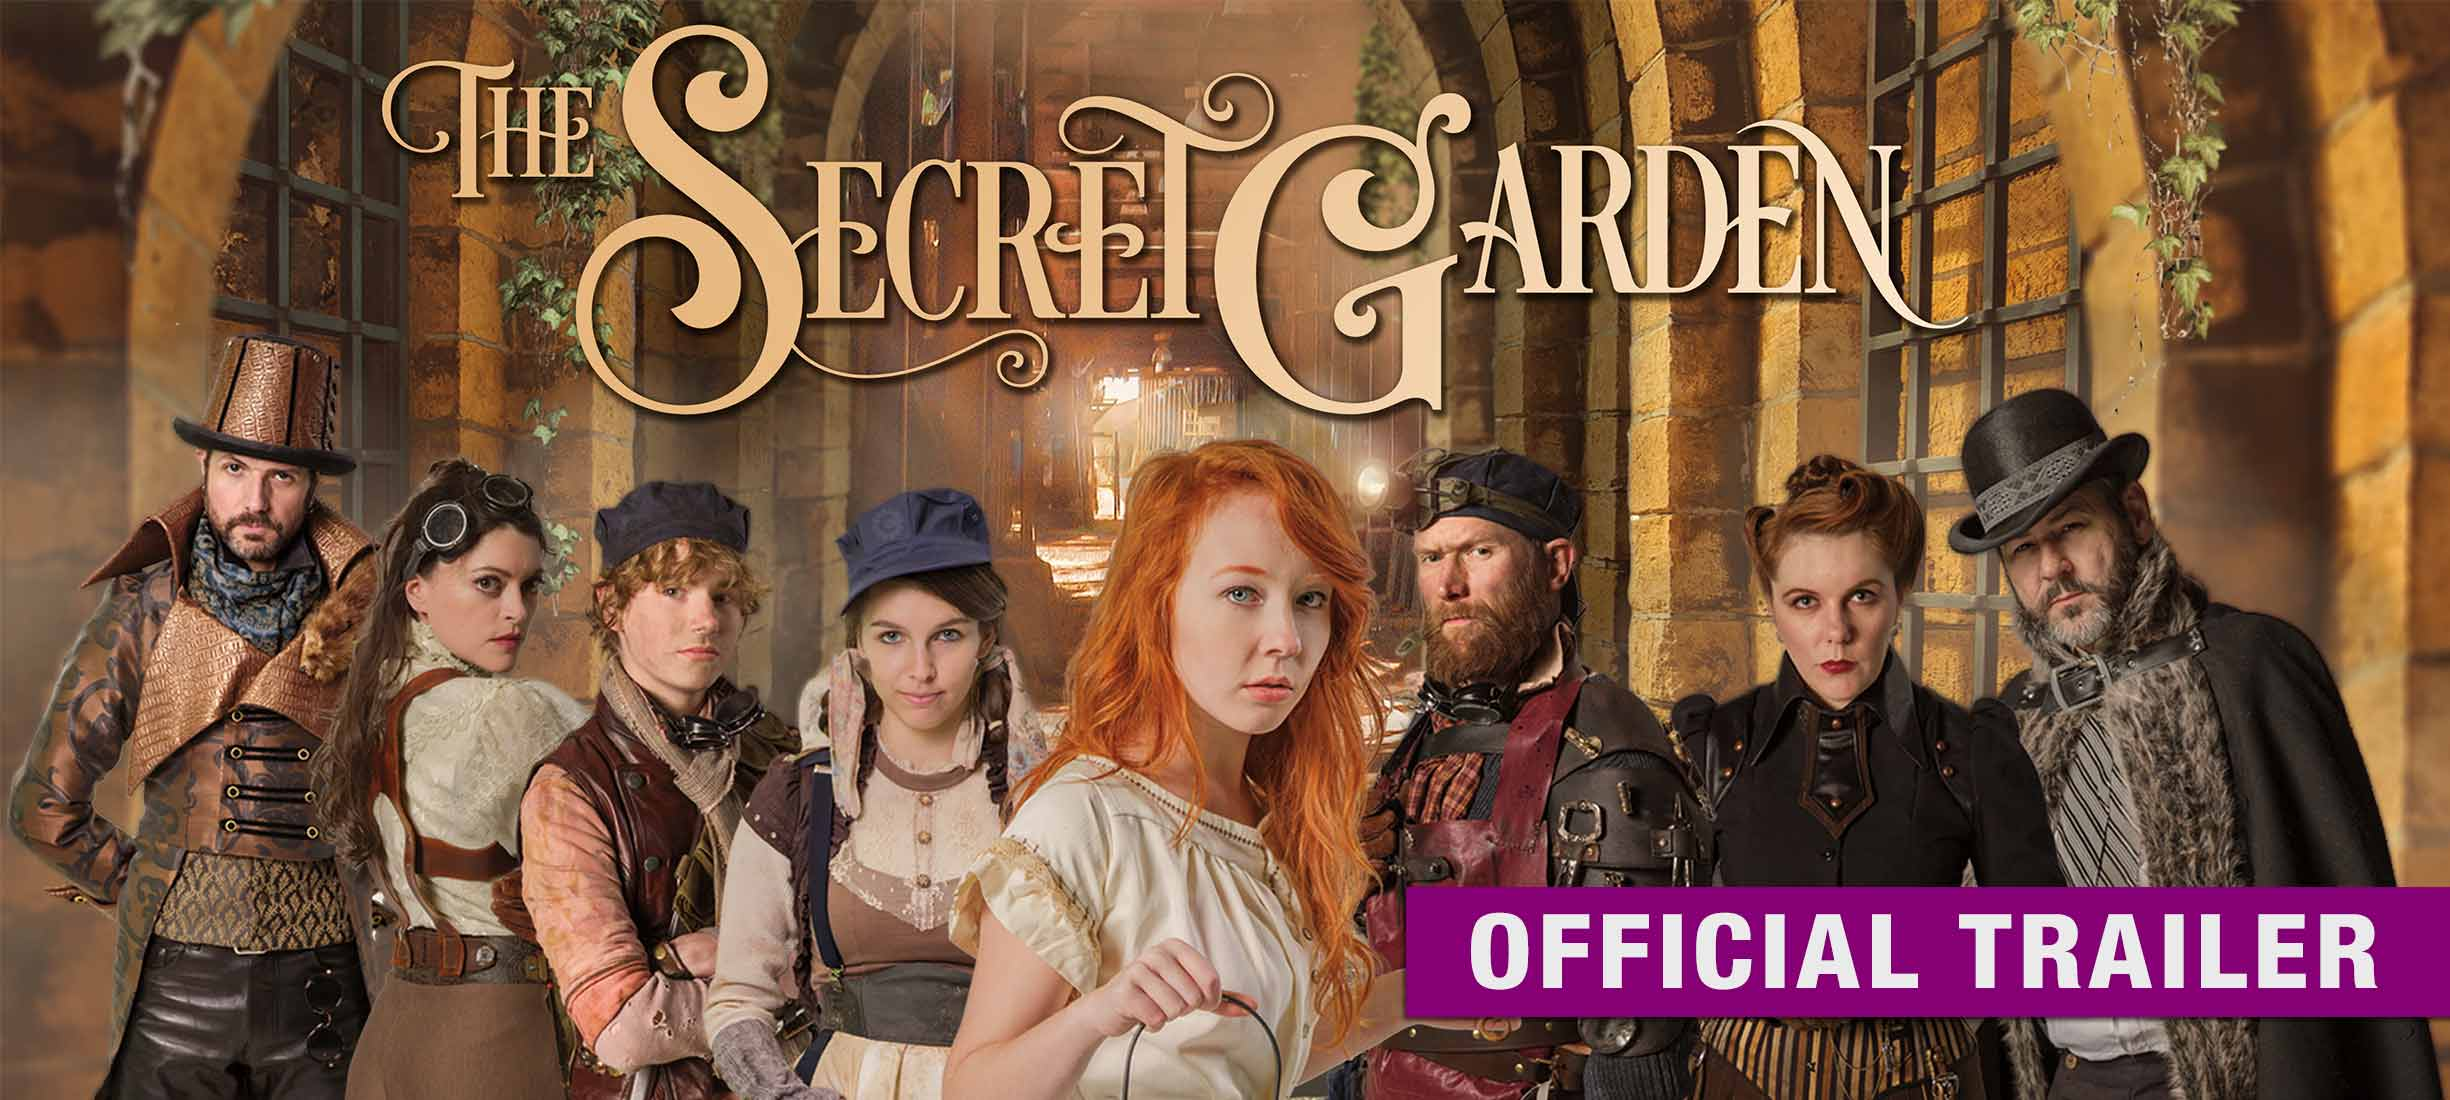 The Secret Garden: Trailer